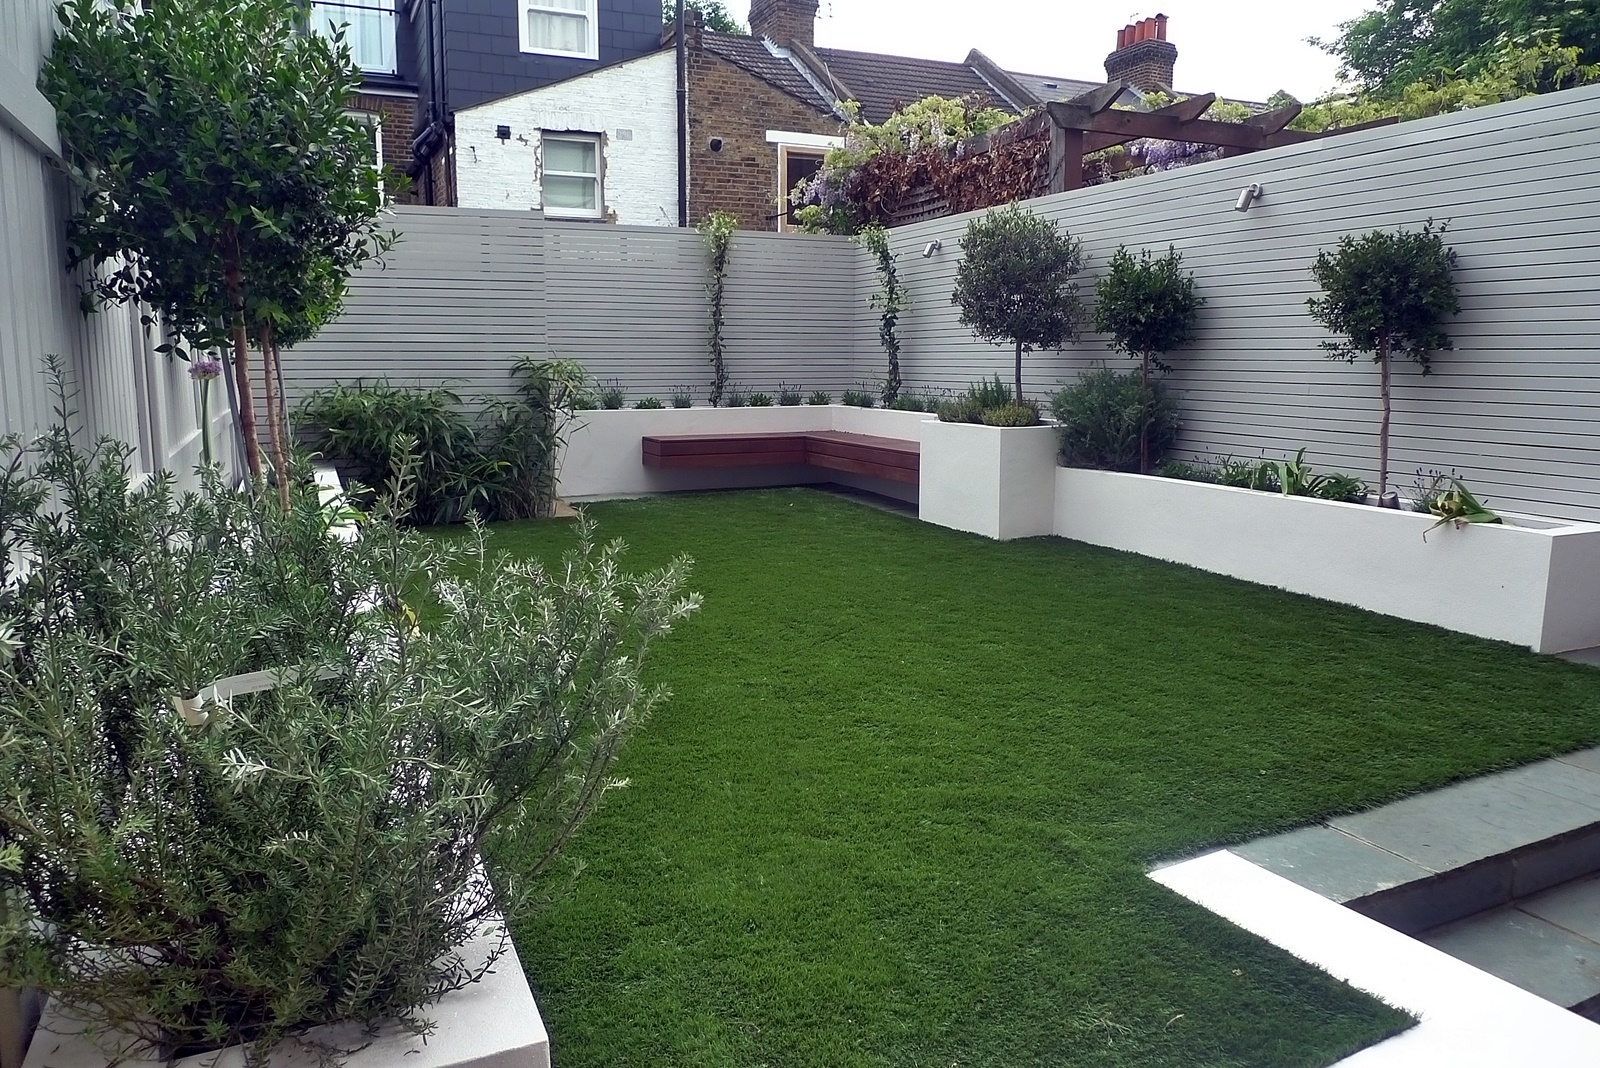 Artificial grass easi grass grey painted fences modern ... on Modern Backyard Patio Ideas  id=85797